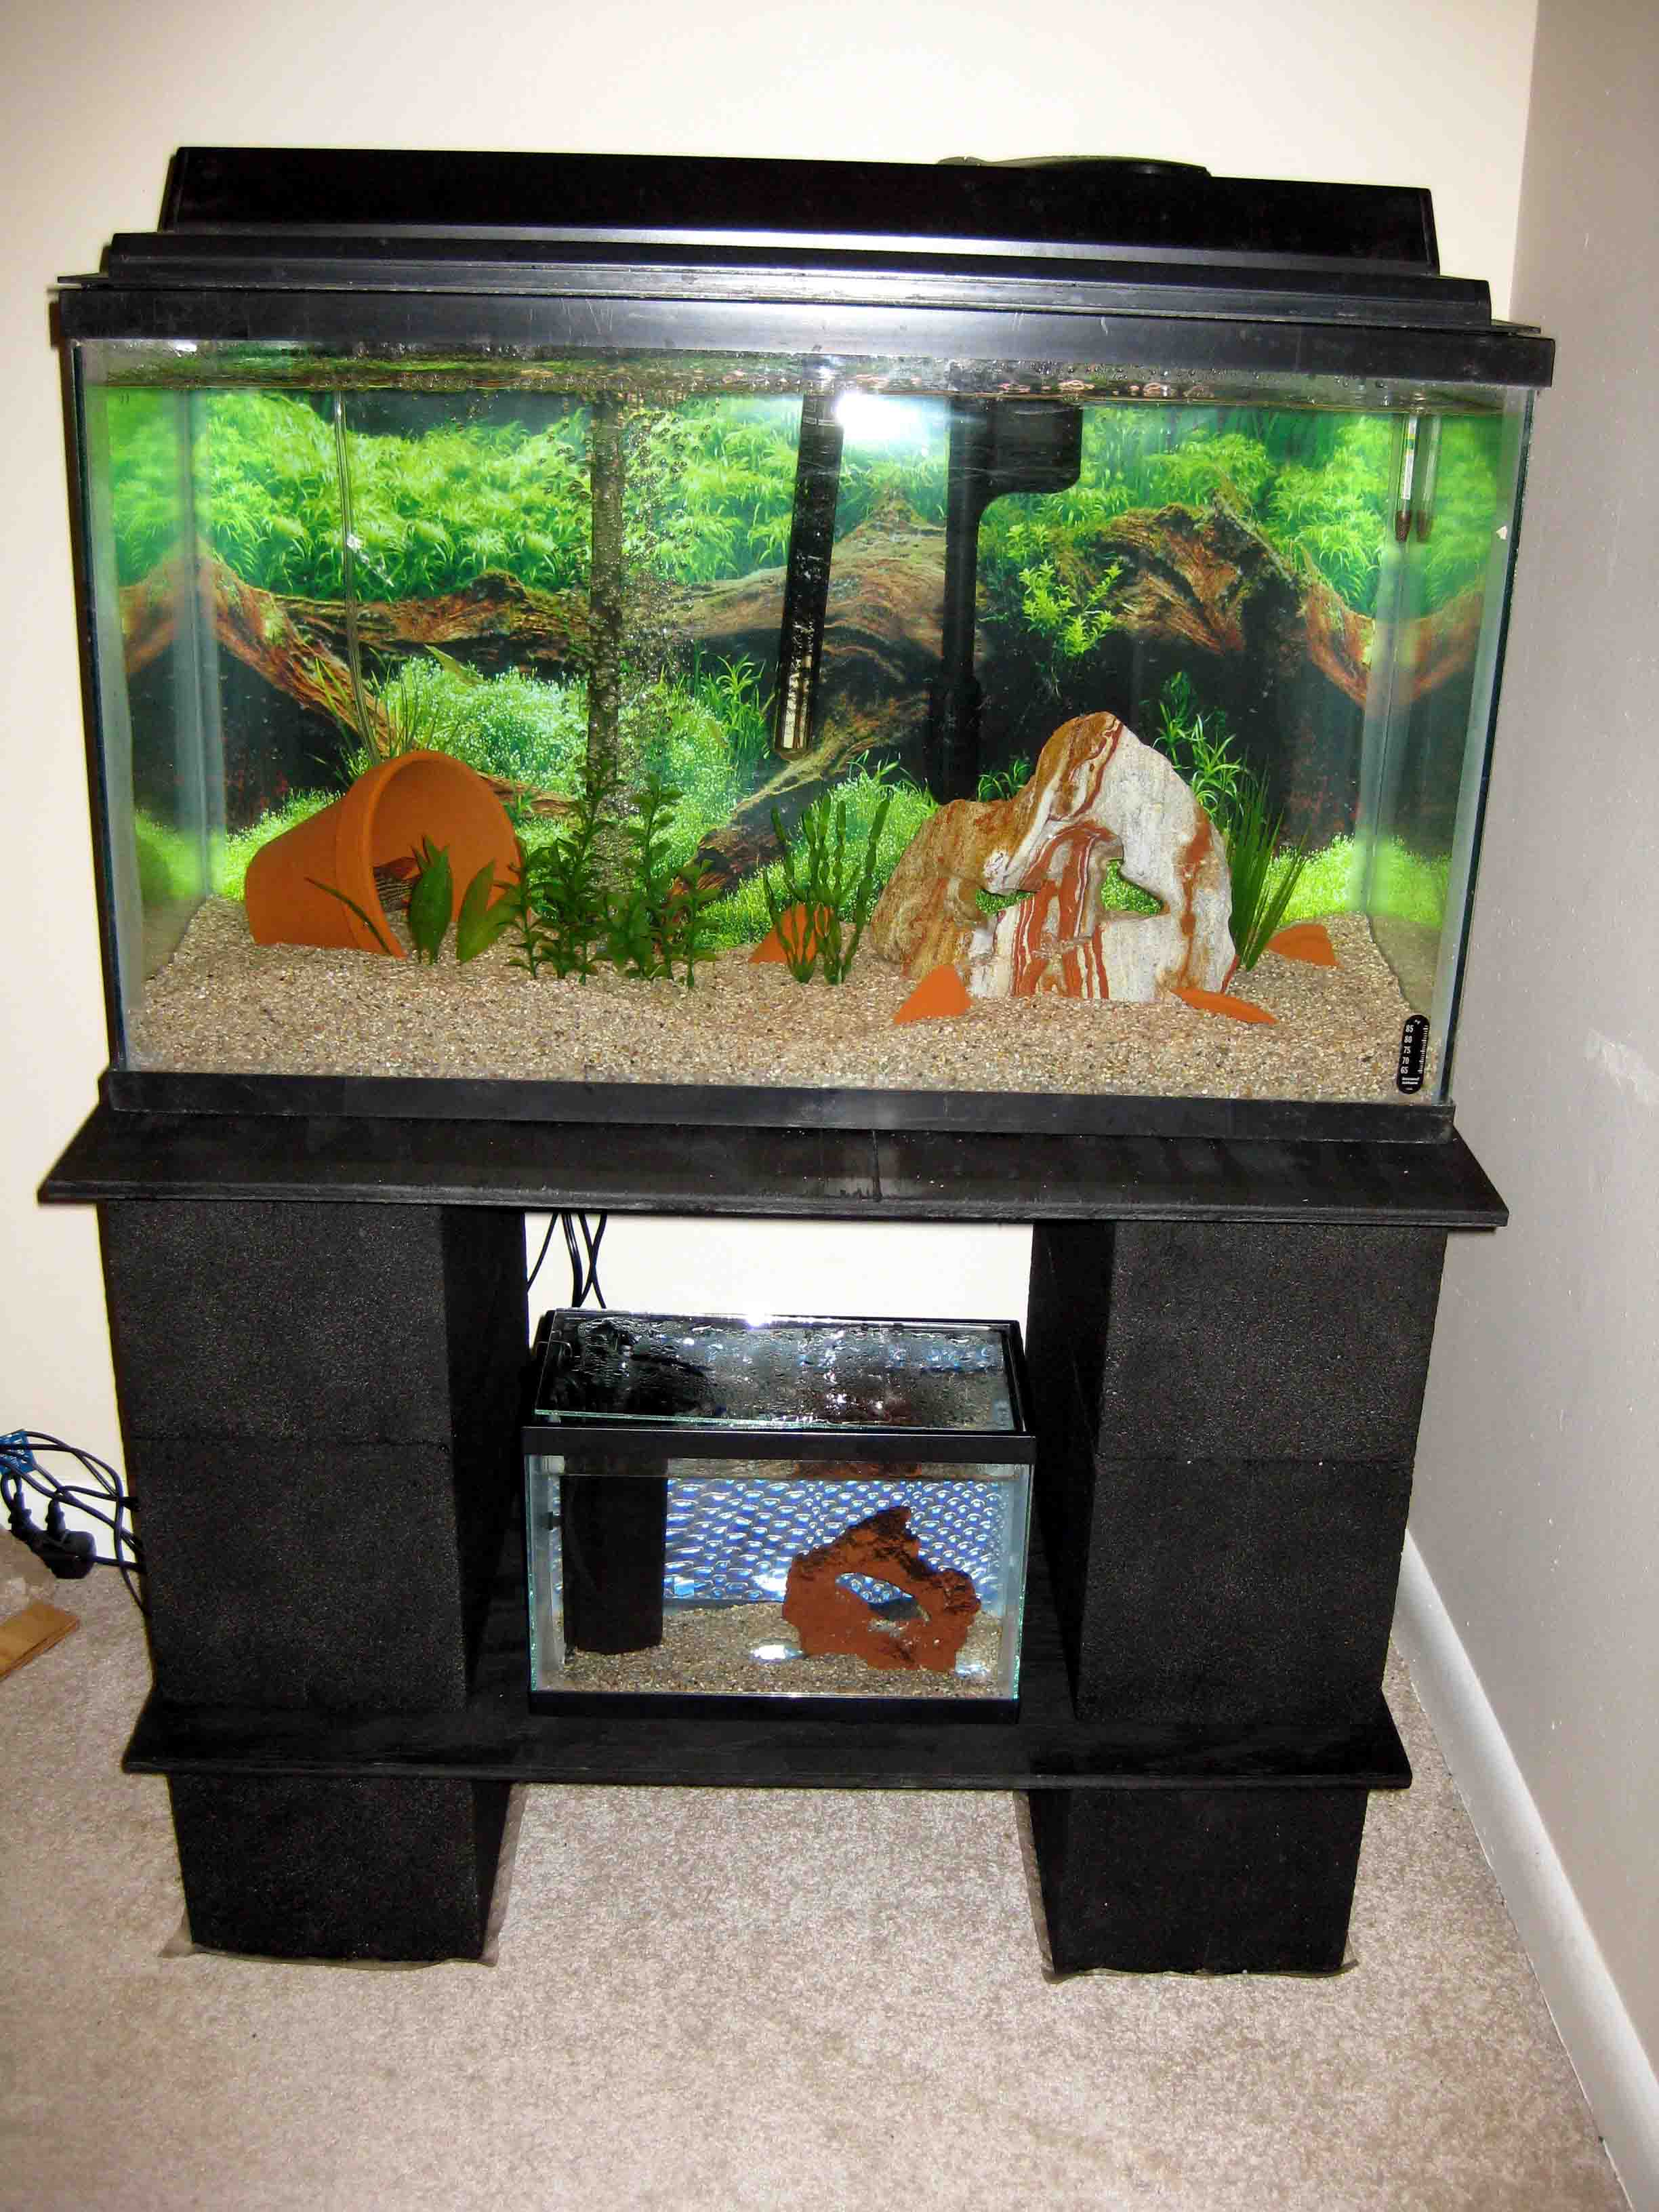 Fish tank vs aquarium - Fish Tank Vs Aquarium